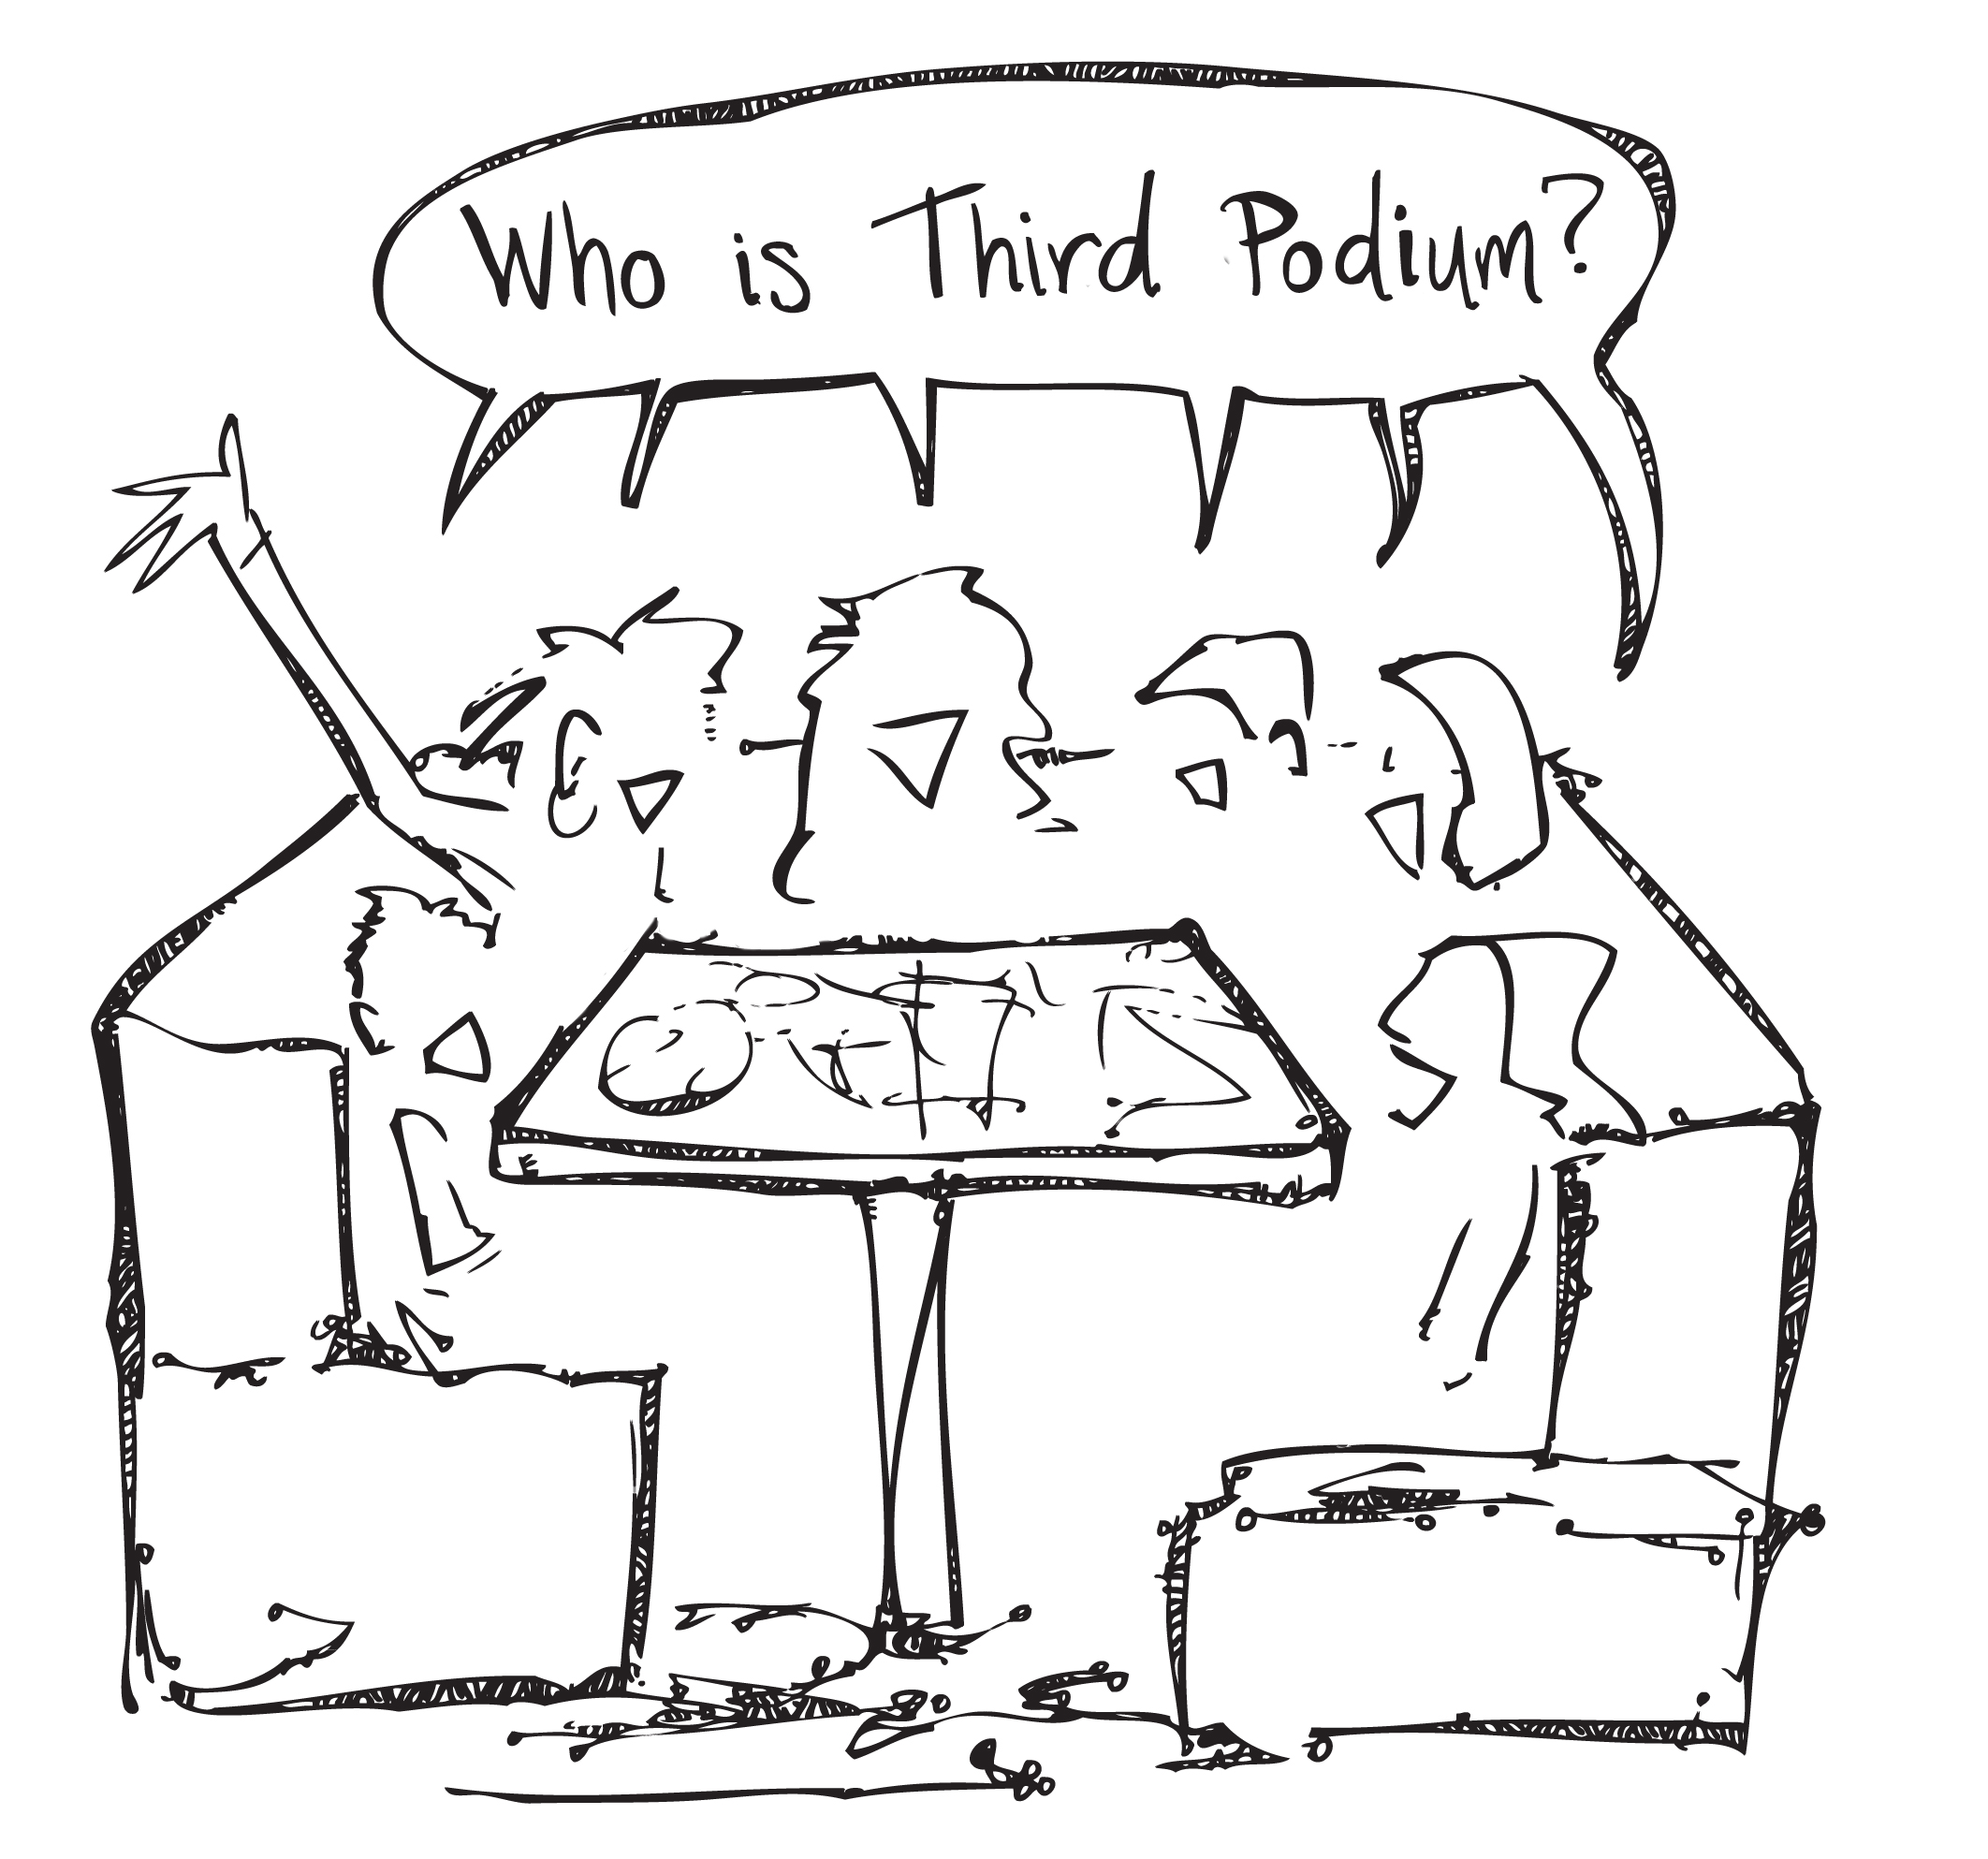 drawing of six women sit around a table shouting 'Who is Third Podium?'